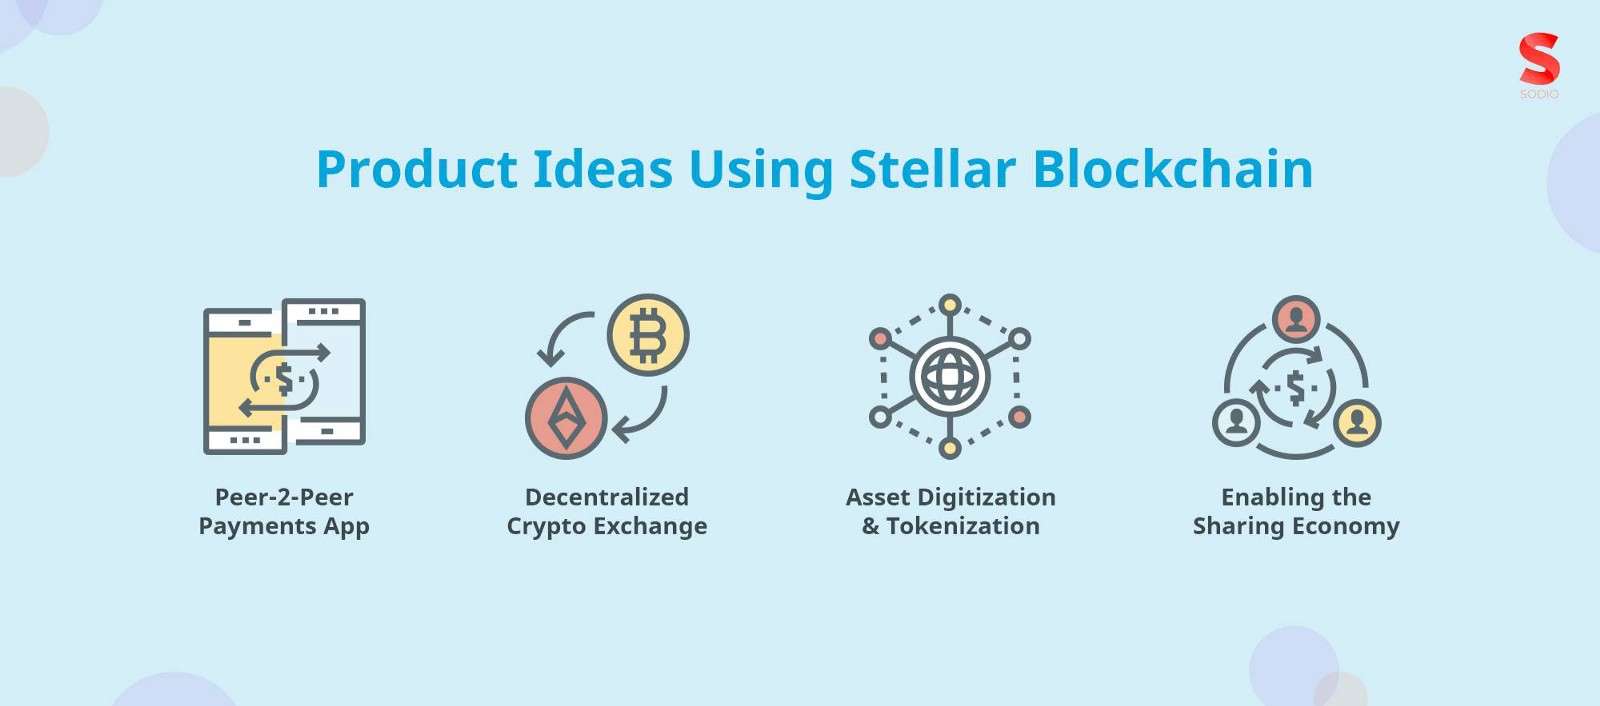 Stellar blockchain used for